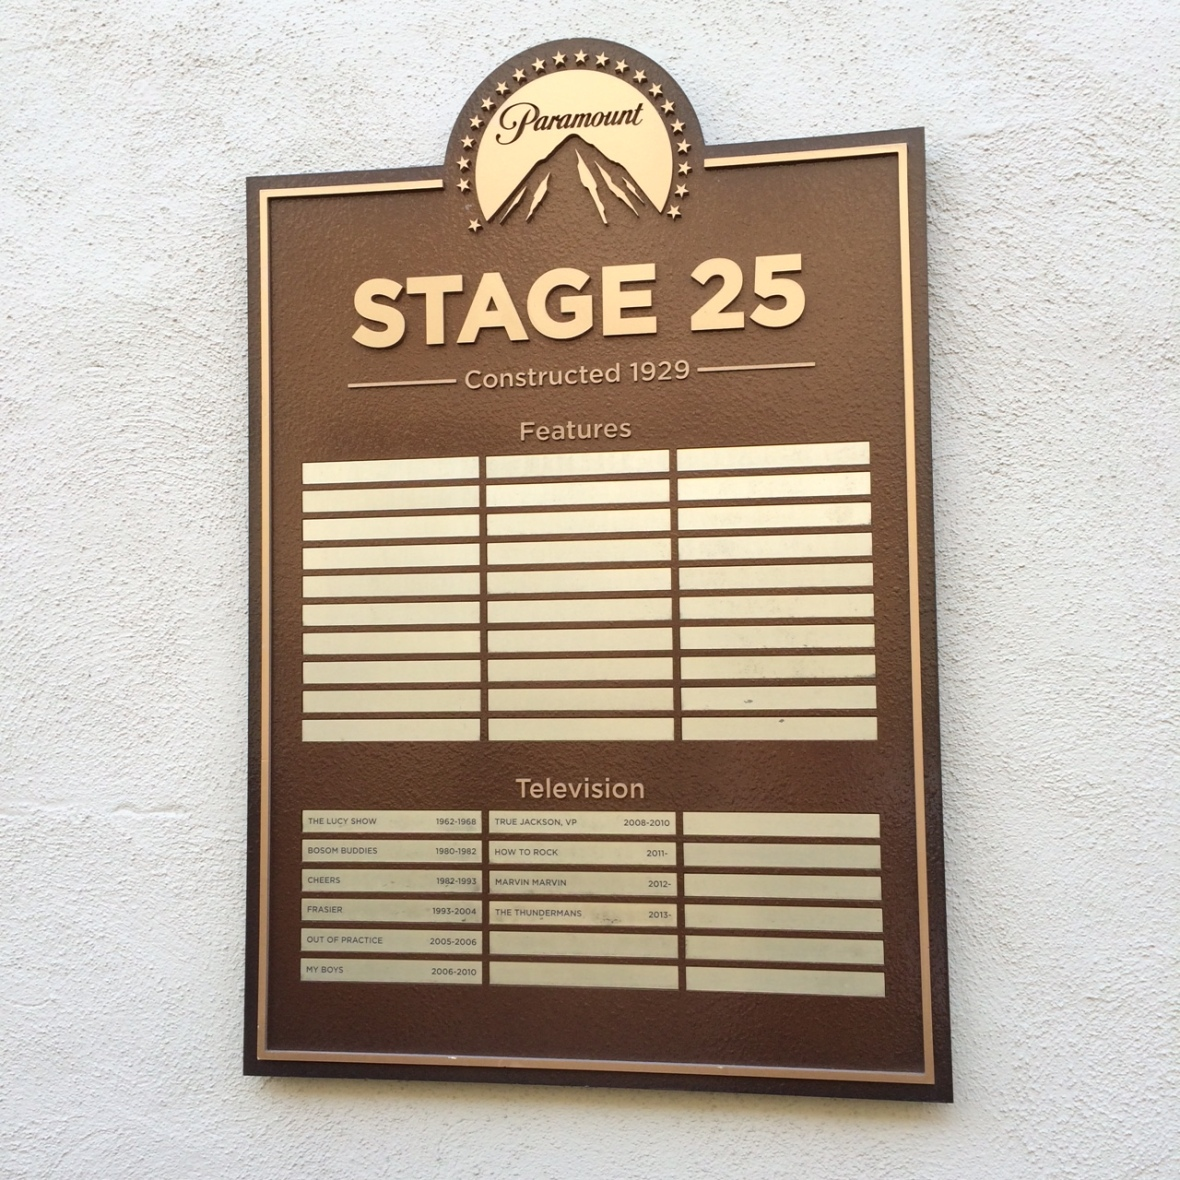 Each stage has a plaque showing what's been filmed in that particular building.